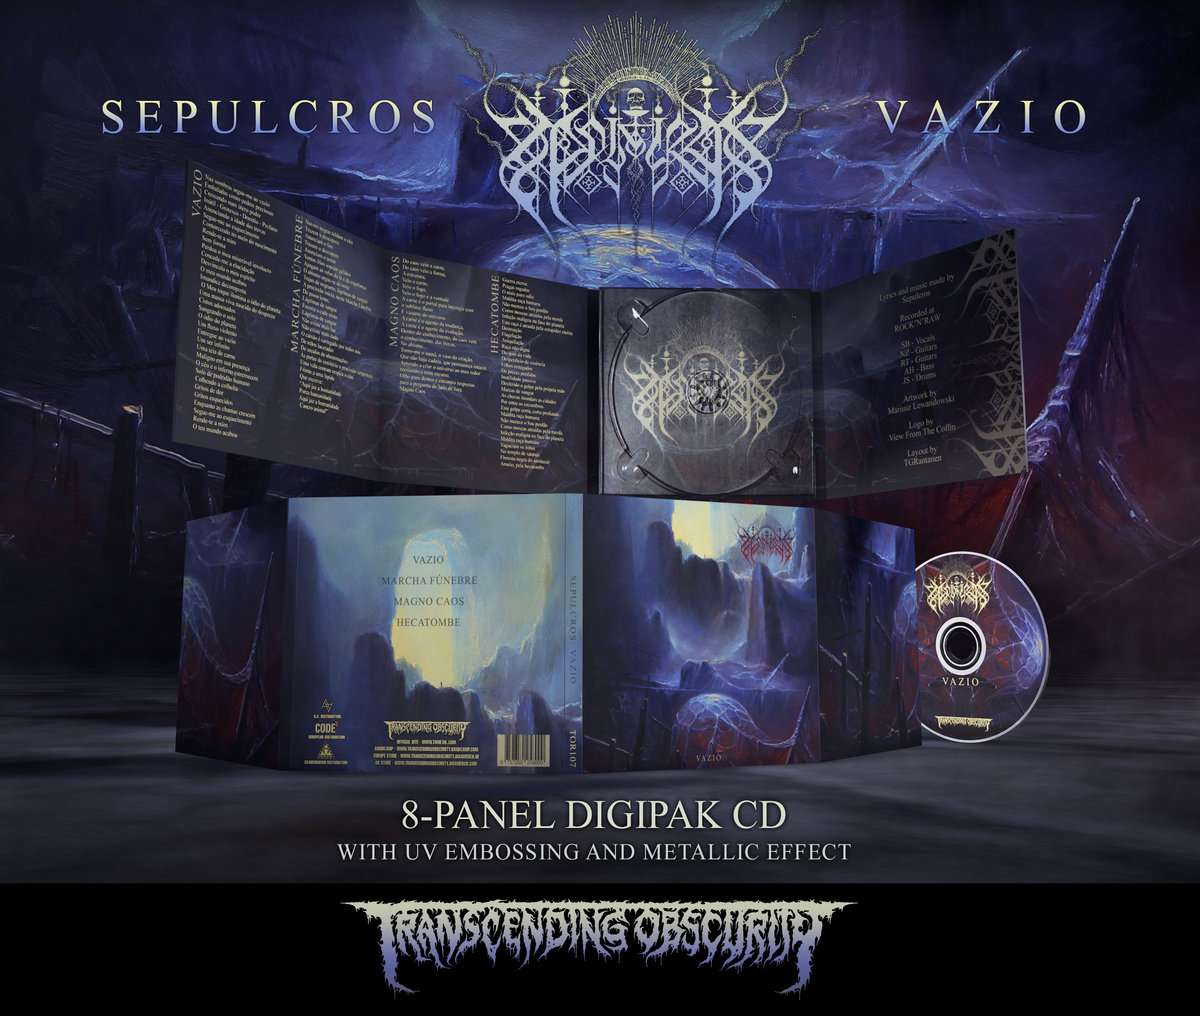 SEPULCROS 8-Panel Digipak CD with Metallic Effect and UV Lamination